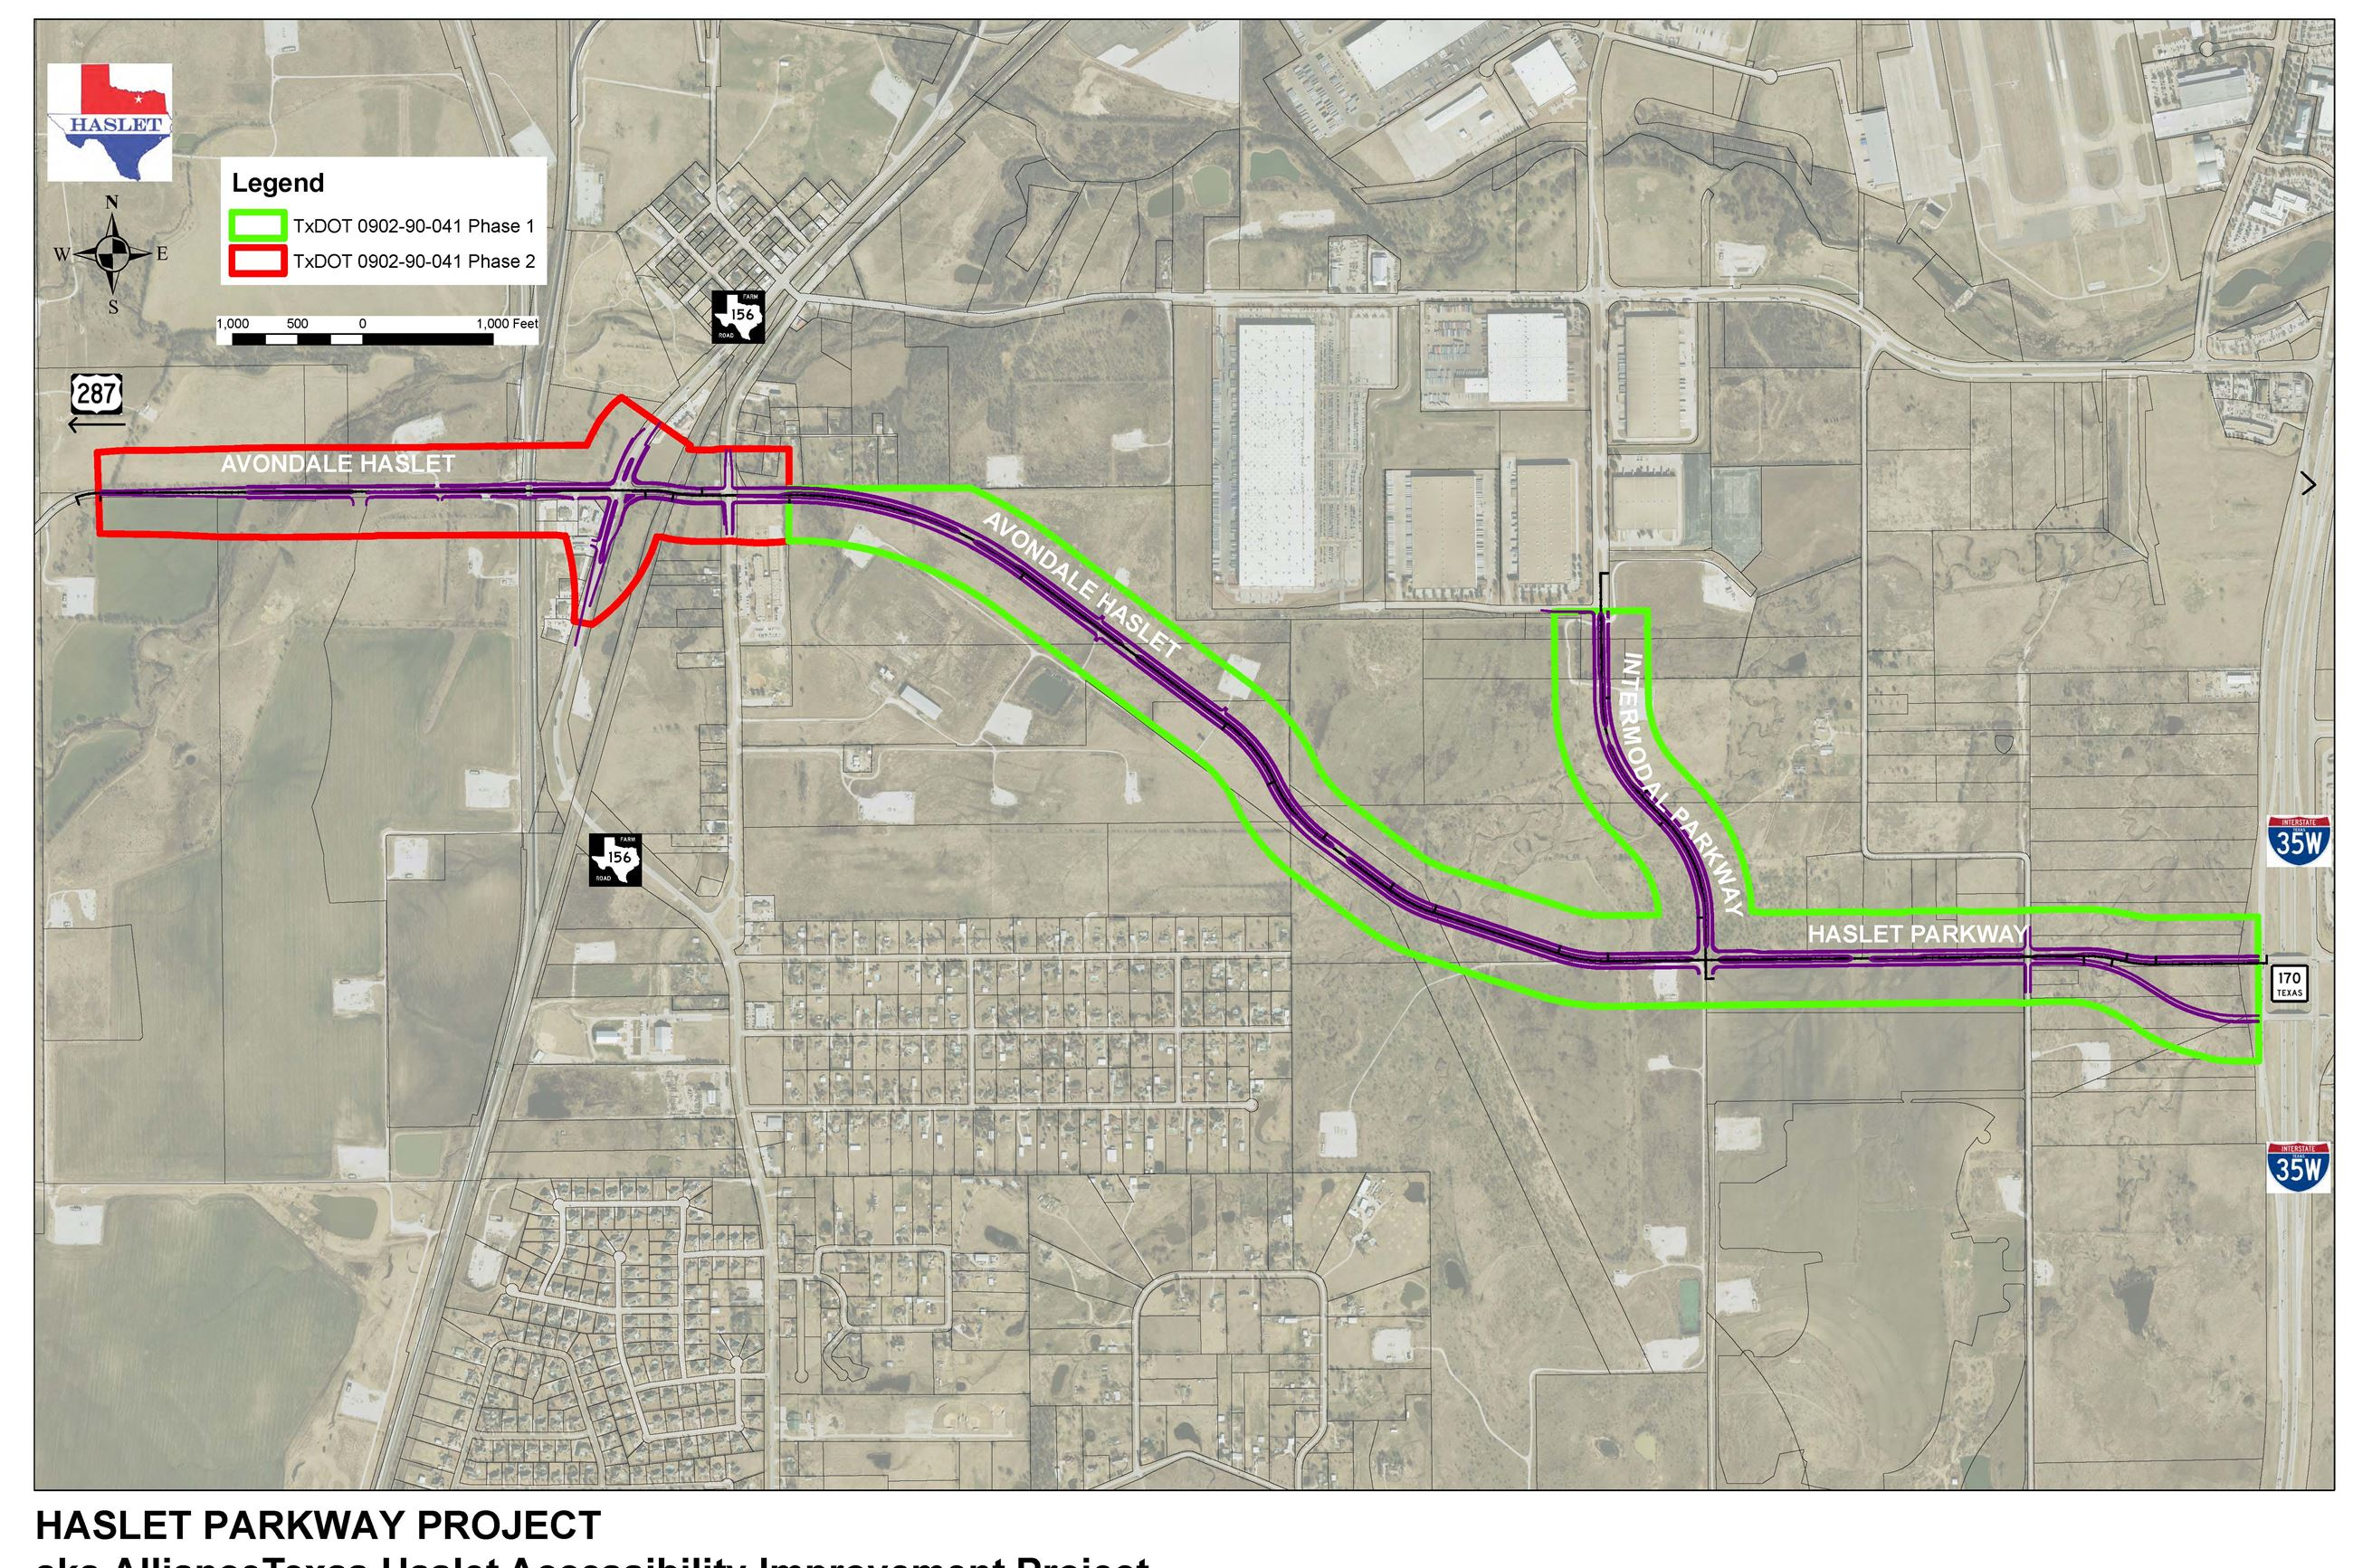 Haslet Parkway Project Map